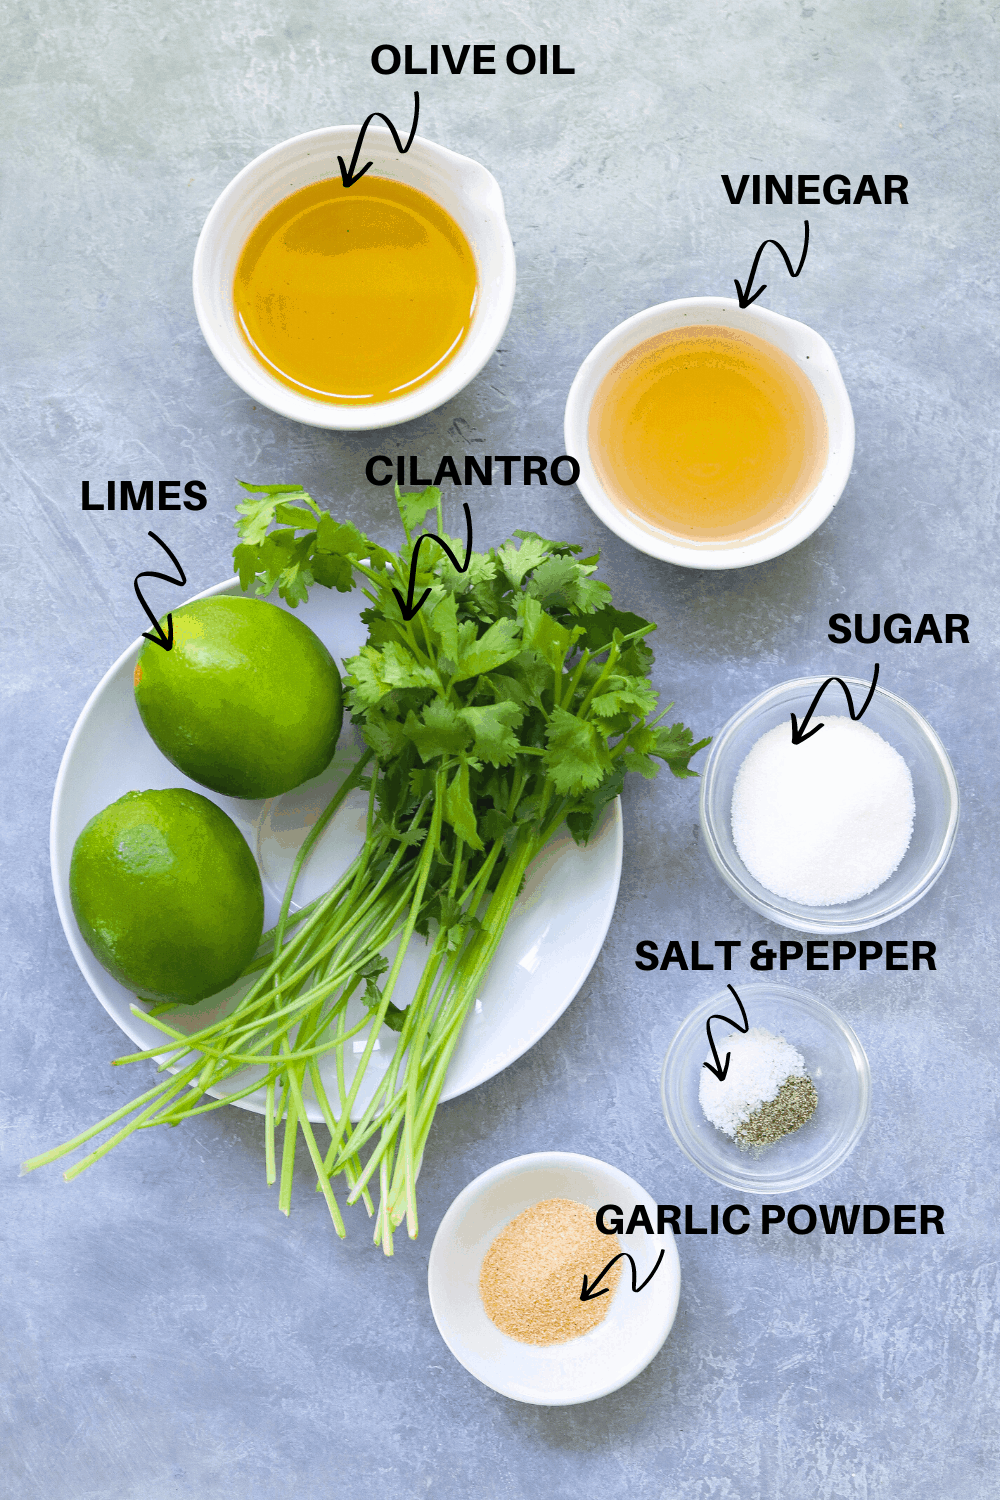 Cilantro and limes with oil and vinegar in bowls on a gray board